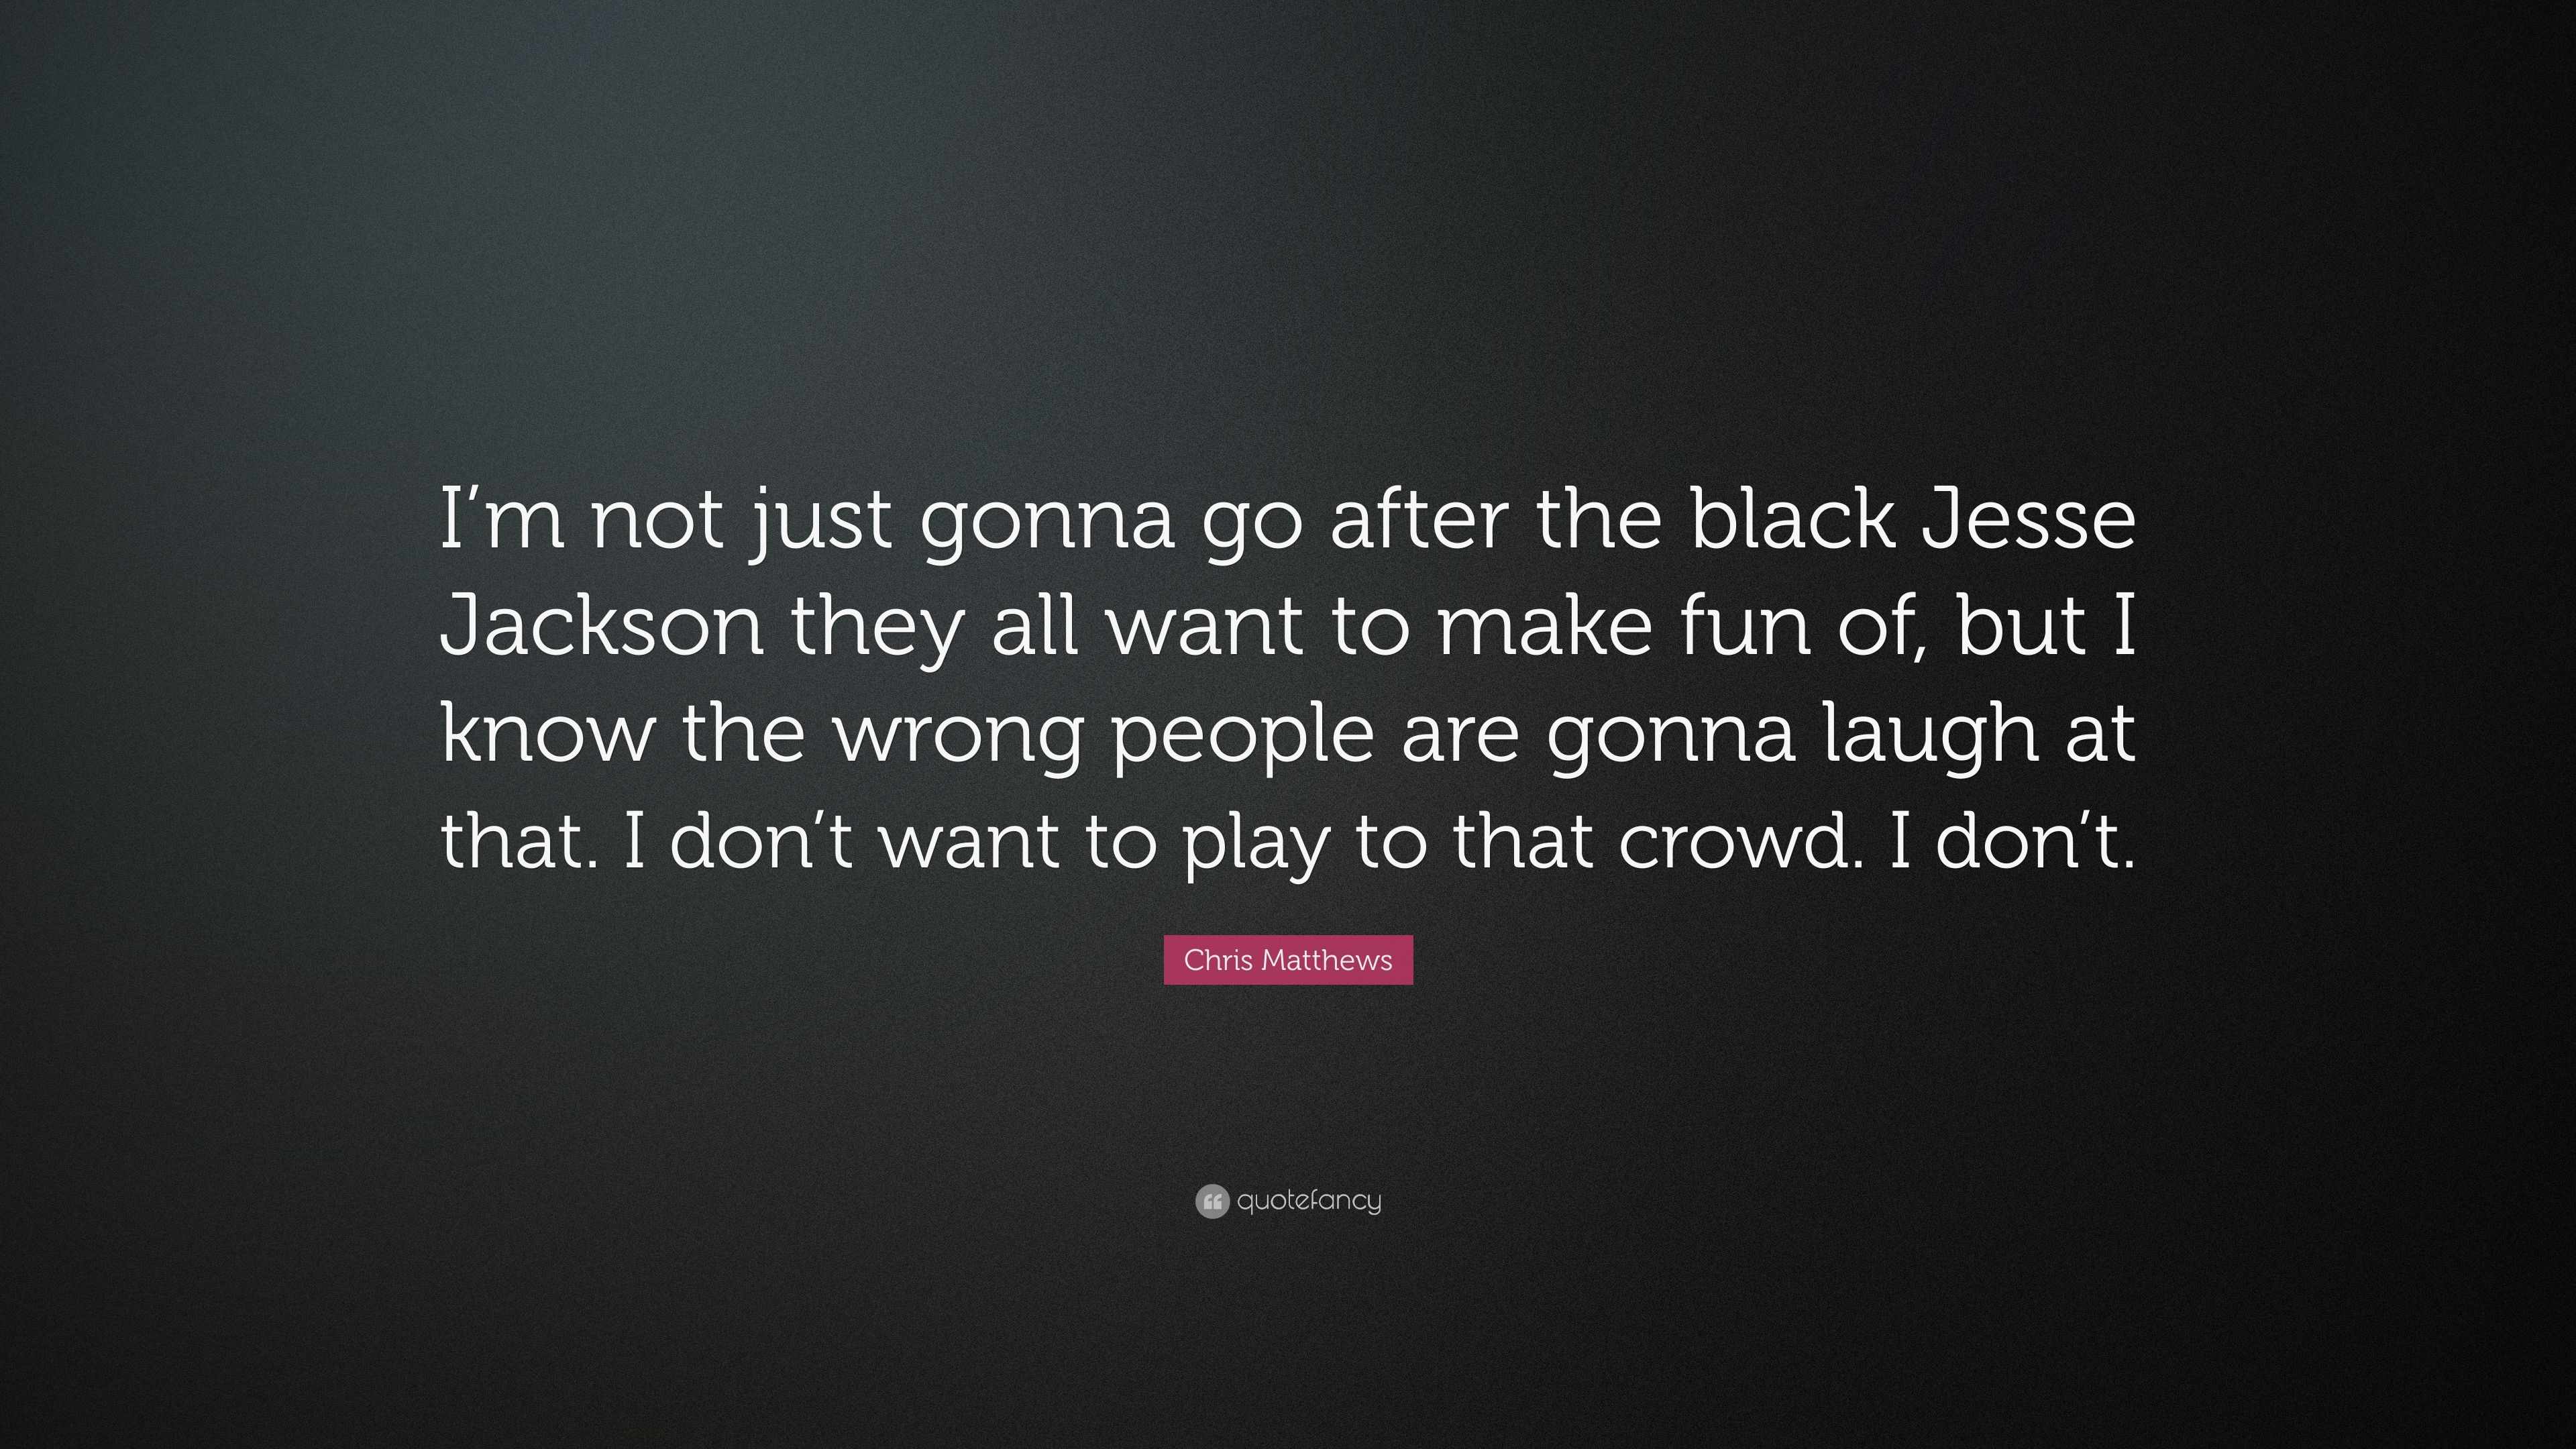 Funny jesse jackson quotes consider, that